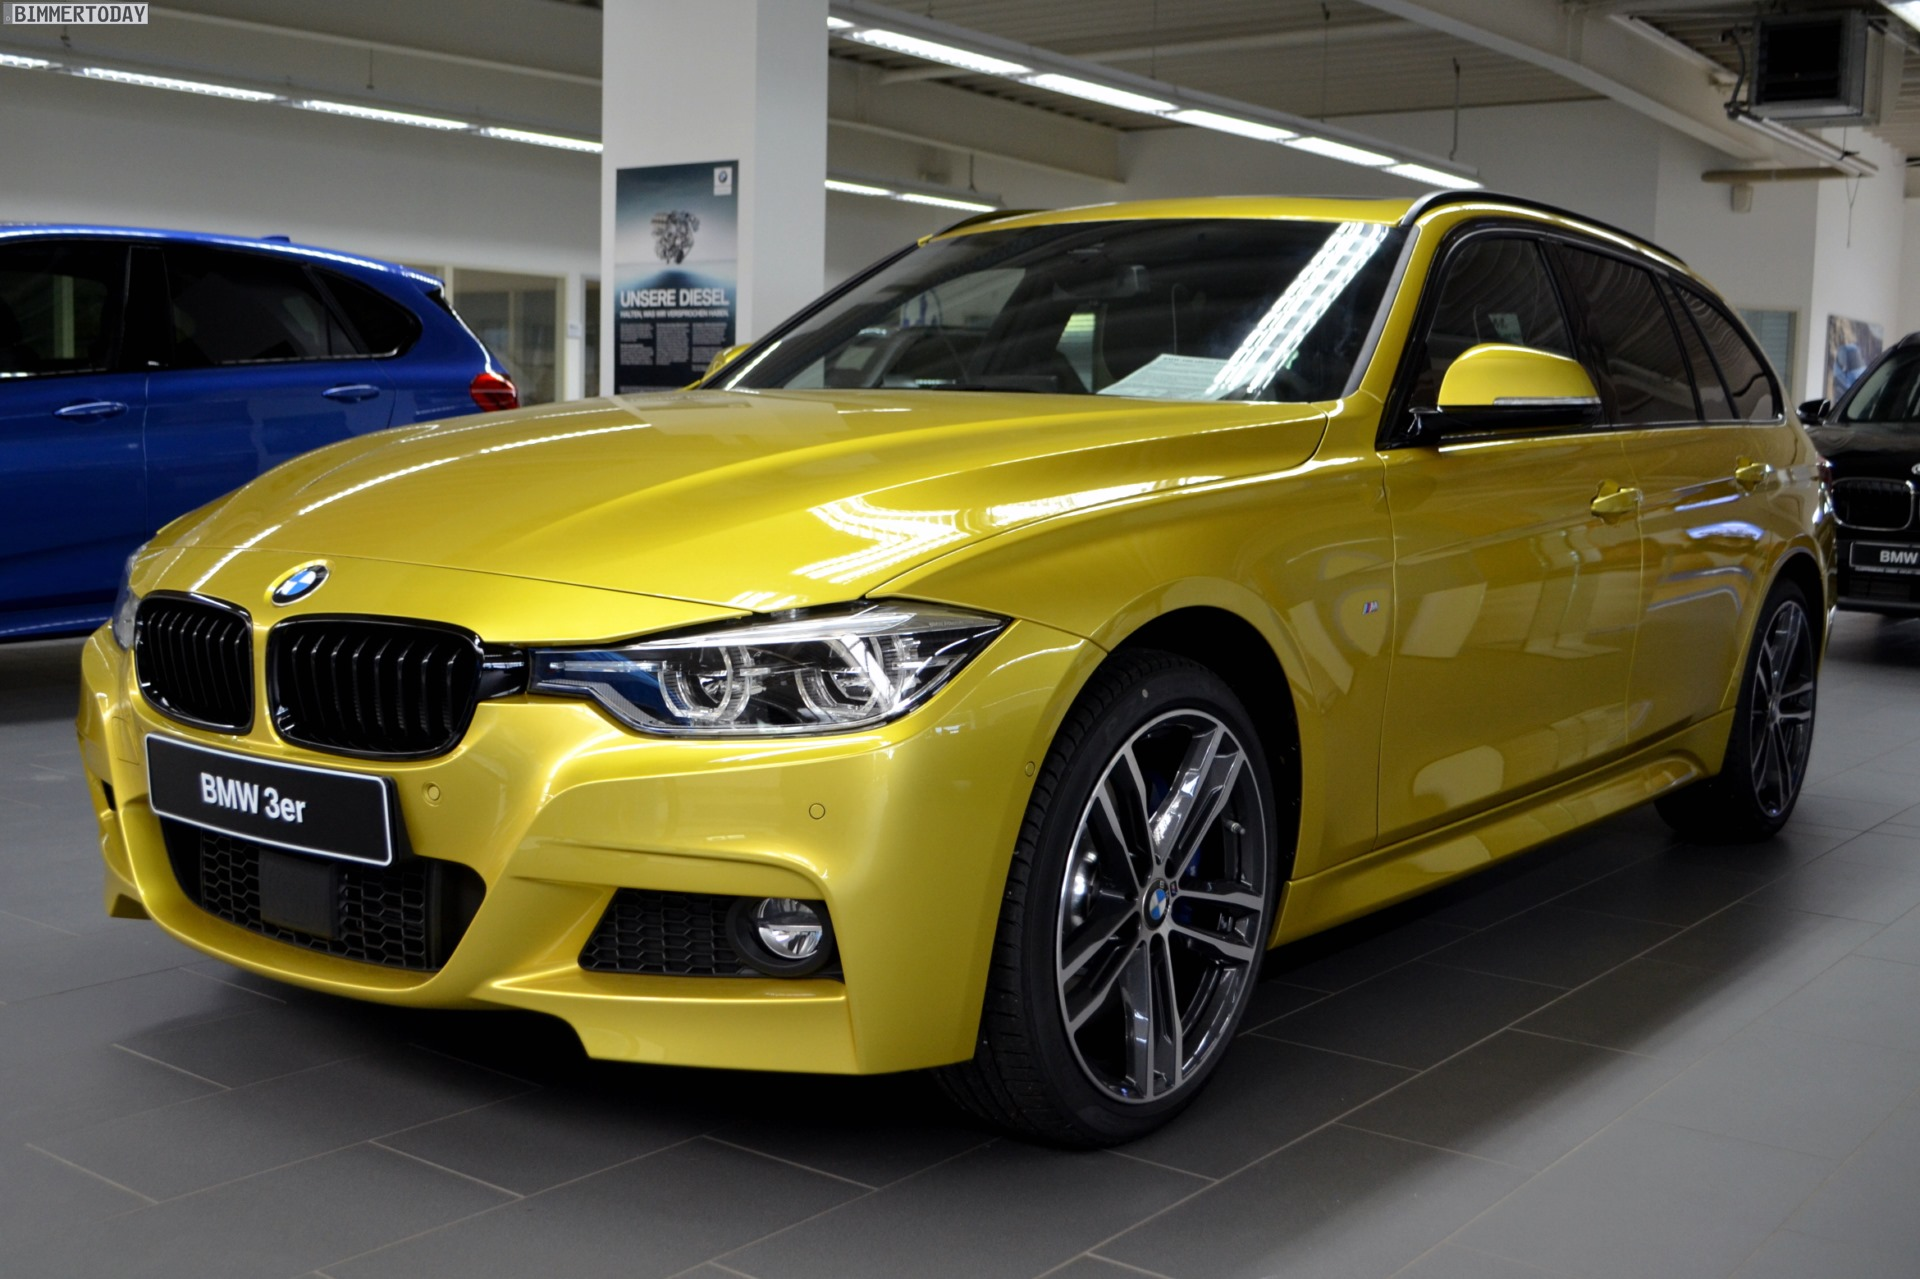 Bmw 340i Touring In Austin Yellow From Bmw Individual